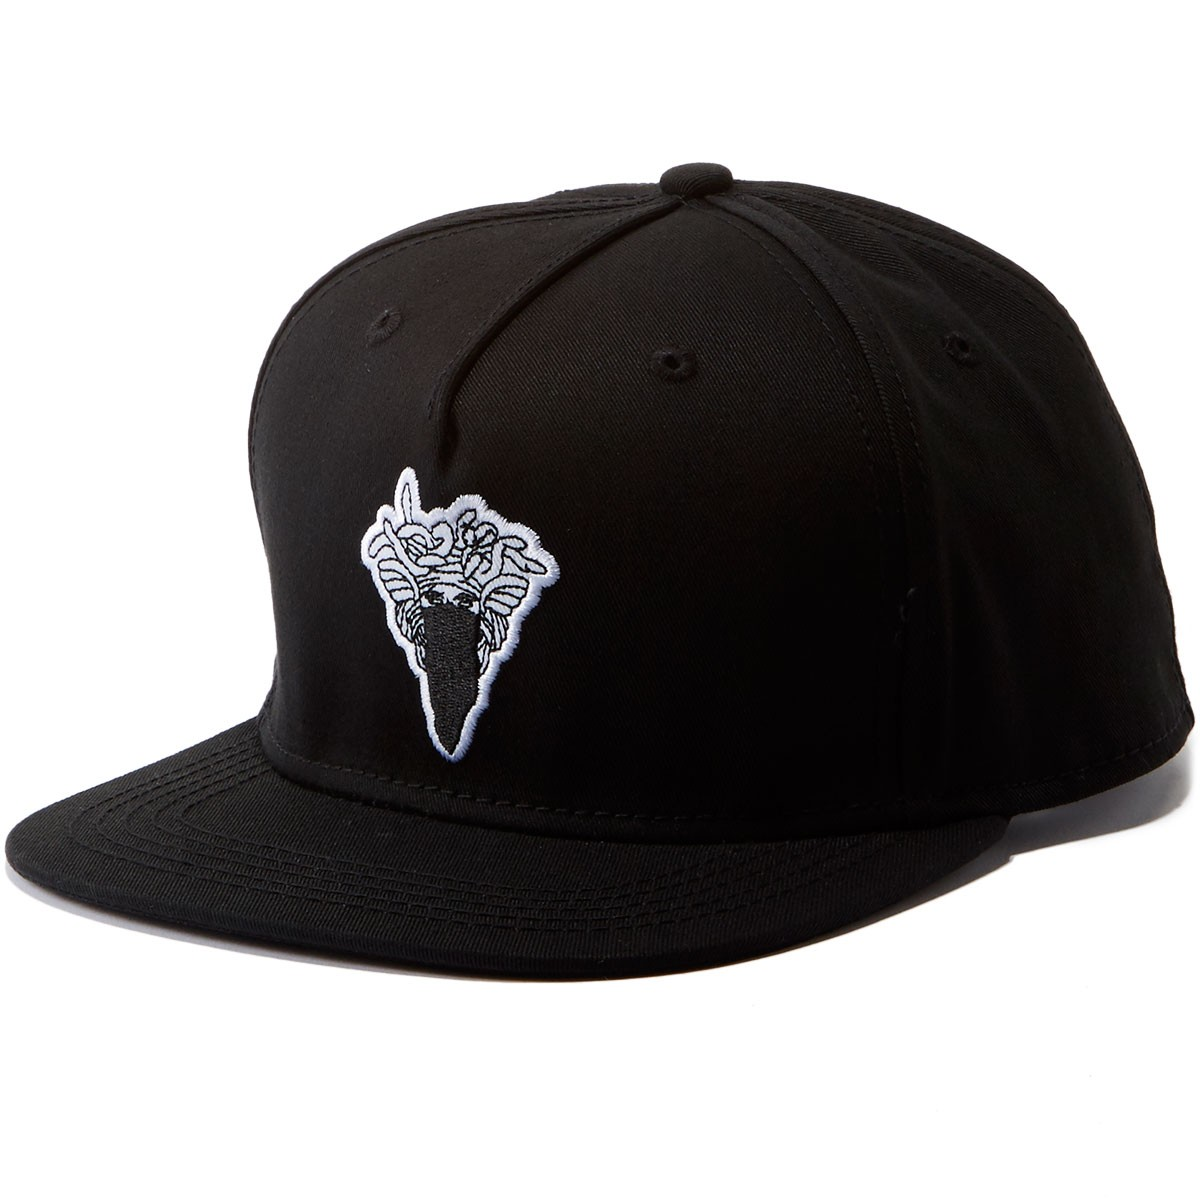 Crooks and Castles Medusa Patch Snapback Hat - Black 40cce0093be2